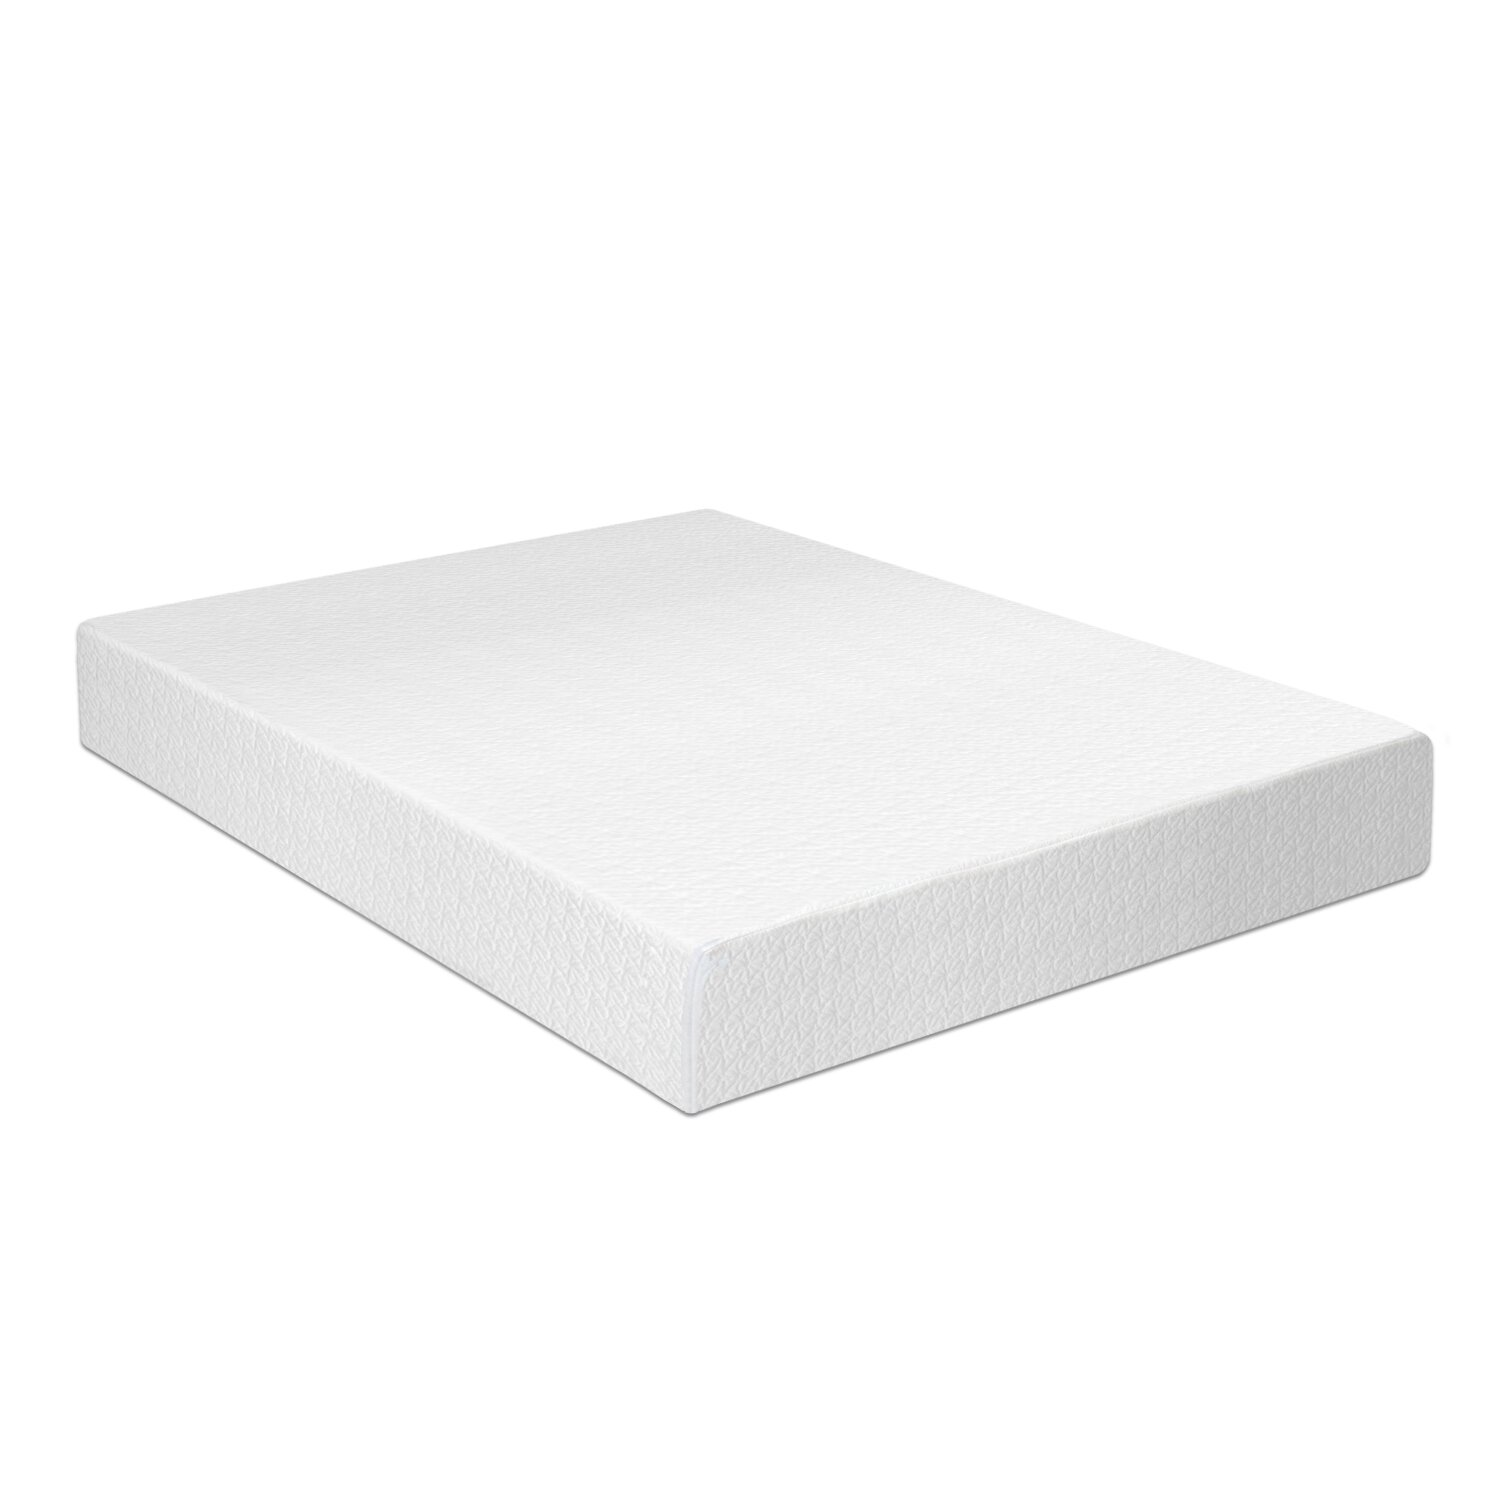 best price quality 10 memory foam mattress and bed frame set reviews wayfair. Black Bedroom Furniture Sets. Home Design Ideas